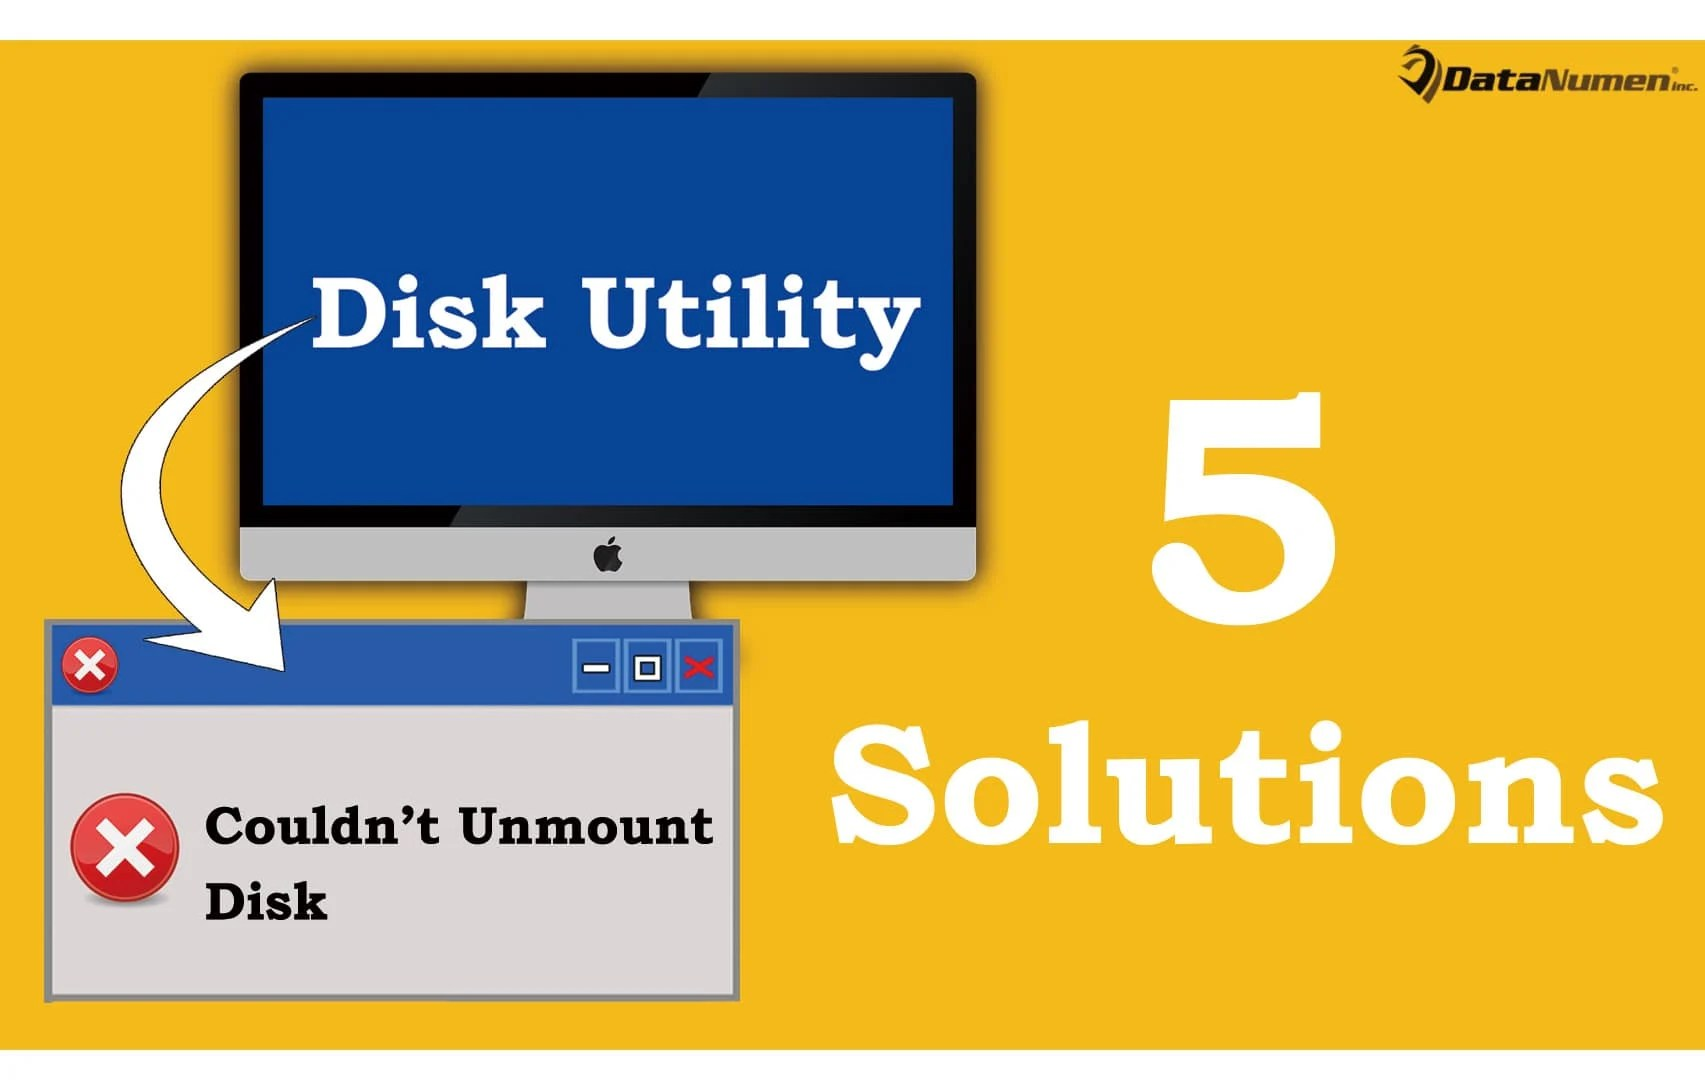 5 Solutions to